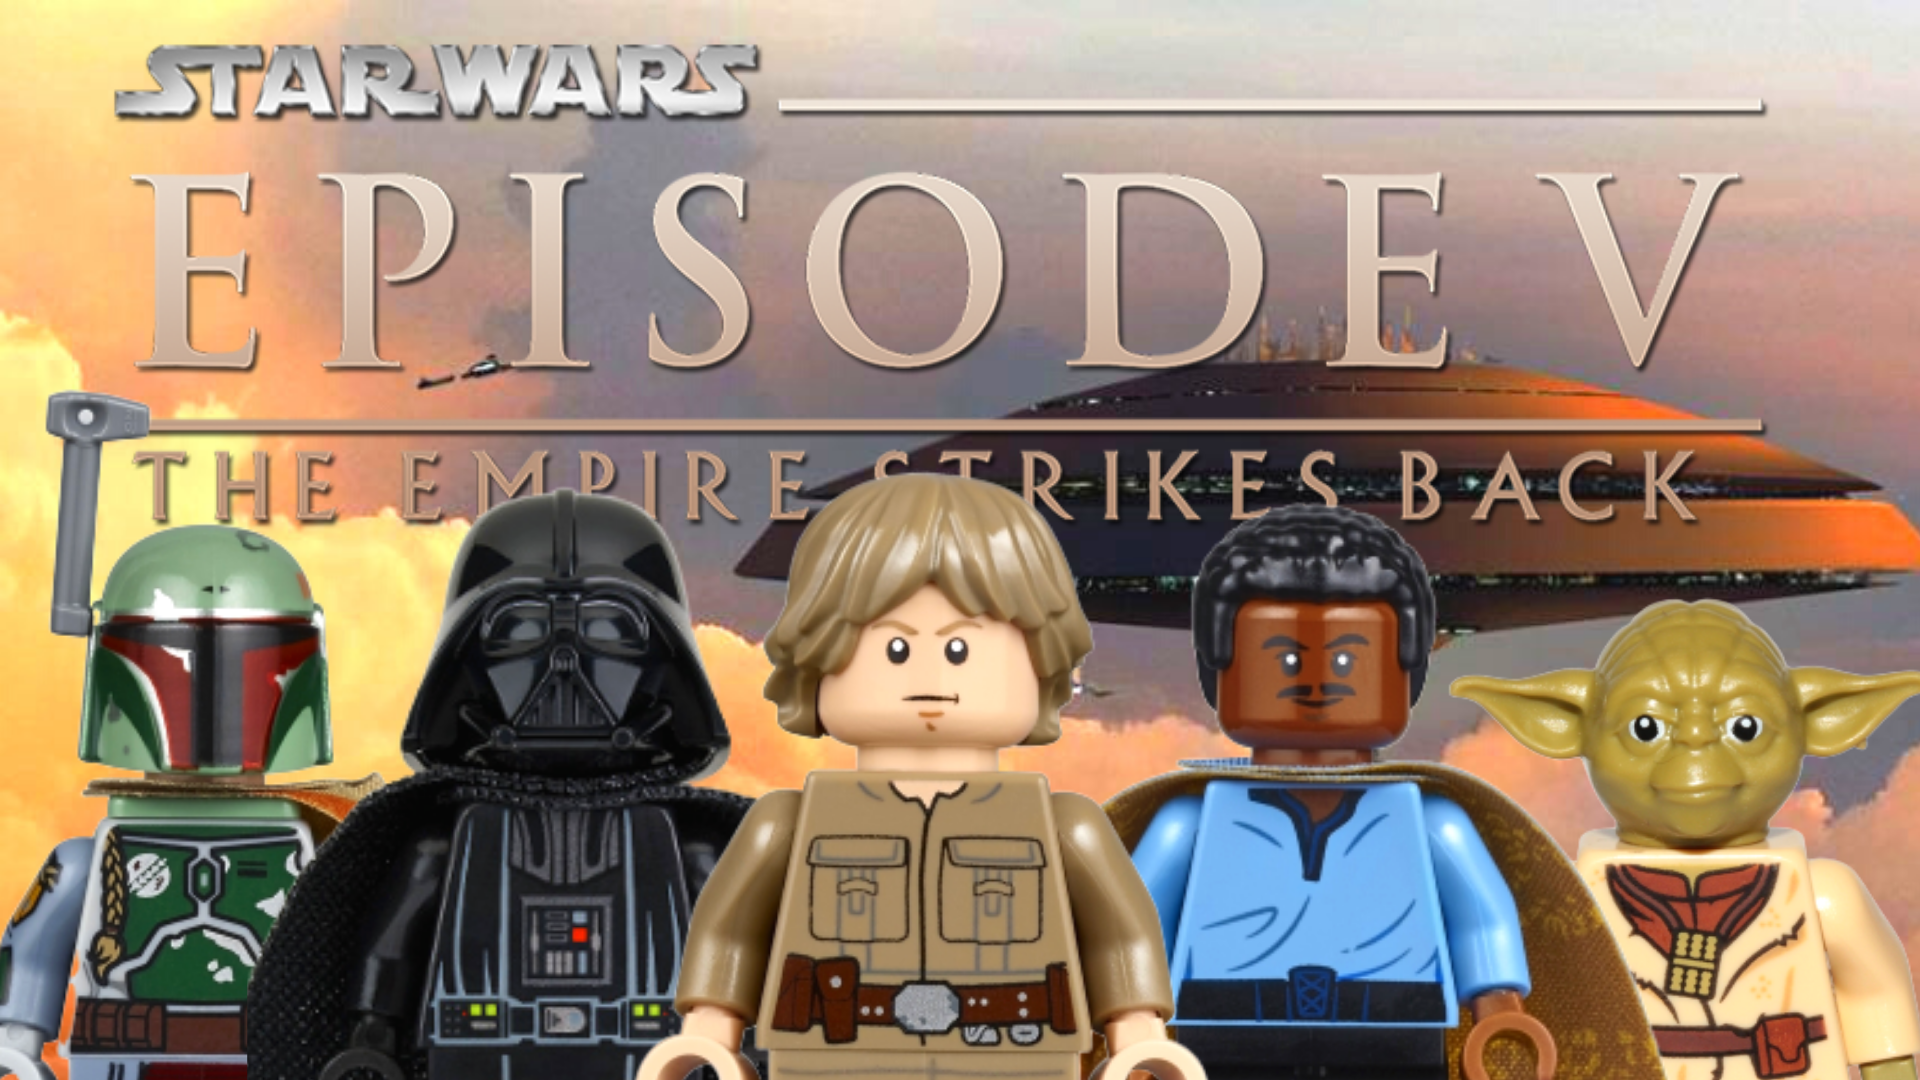 The Empire Strikes Back All Lego Star Wars Minifigures From Episode 5